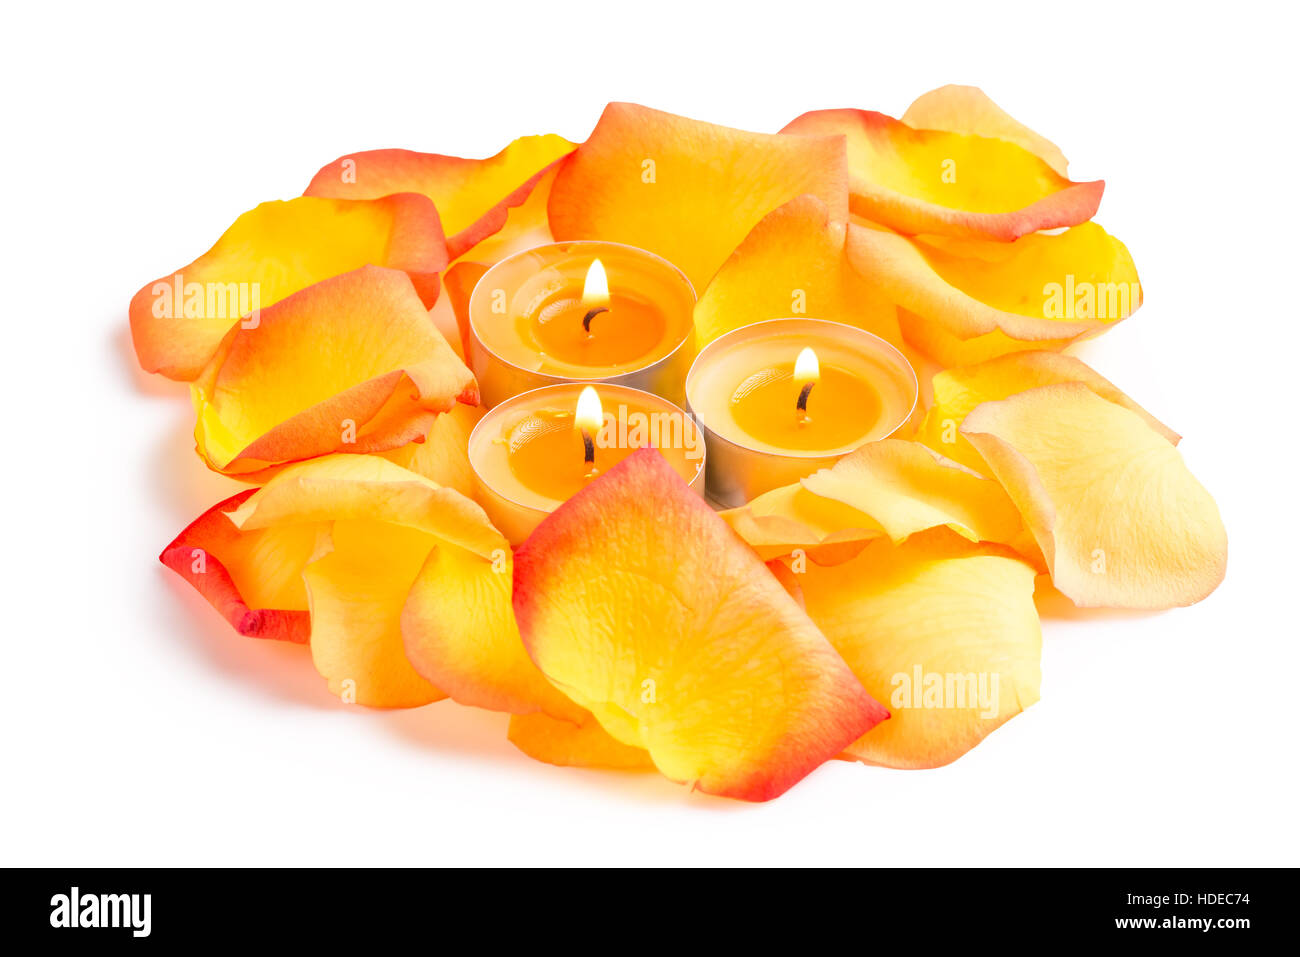 Candlelight And Rose Petals In Orange Color On A White Background Closeup